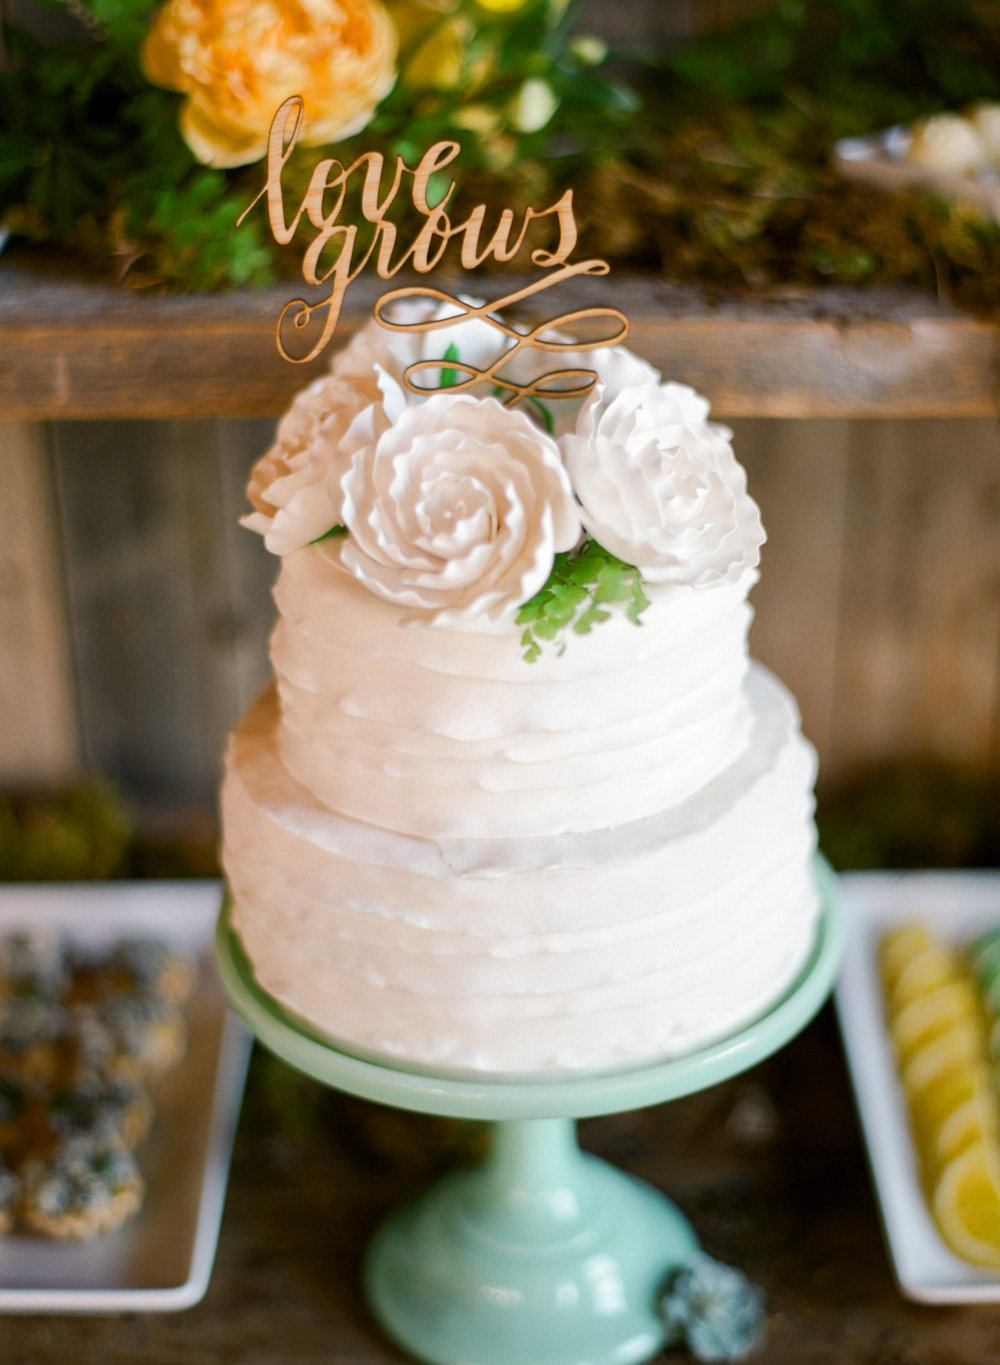 Jody_Savage_Photography_Boho_Bride_Cake.jpg